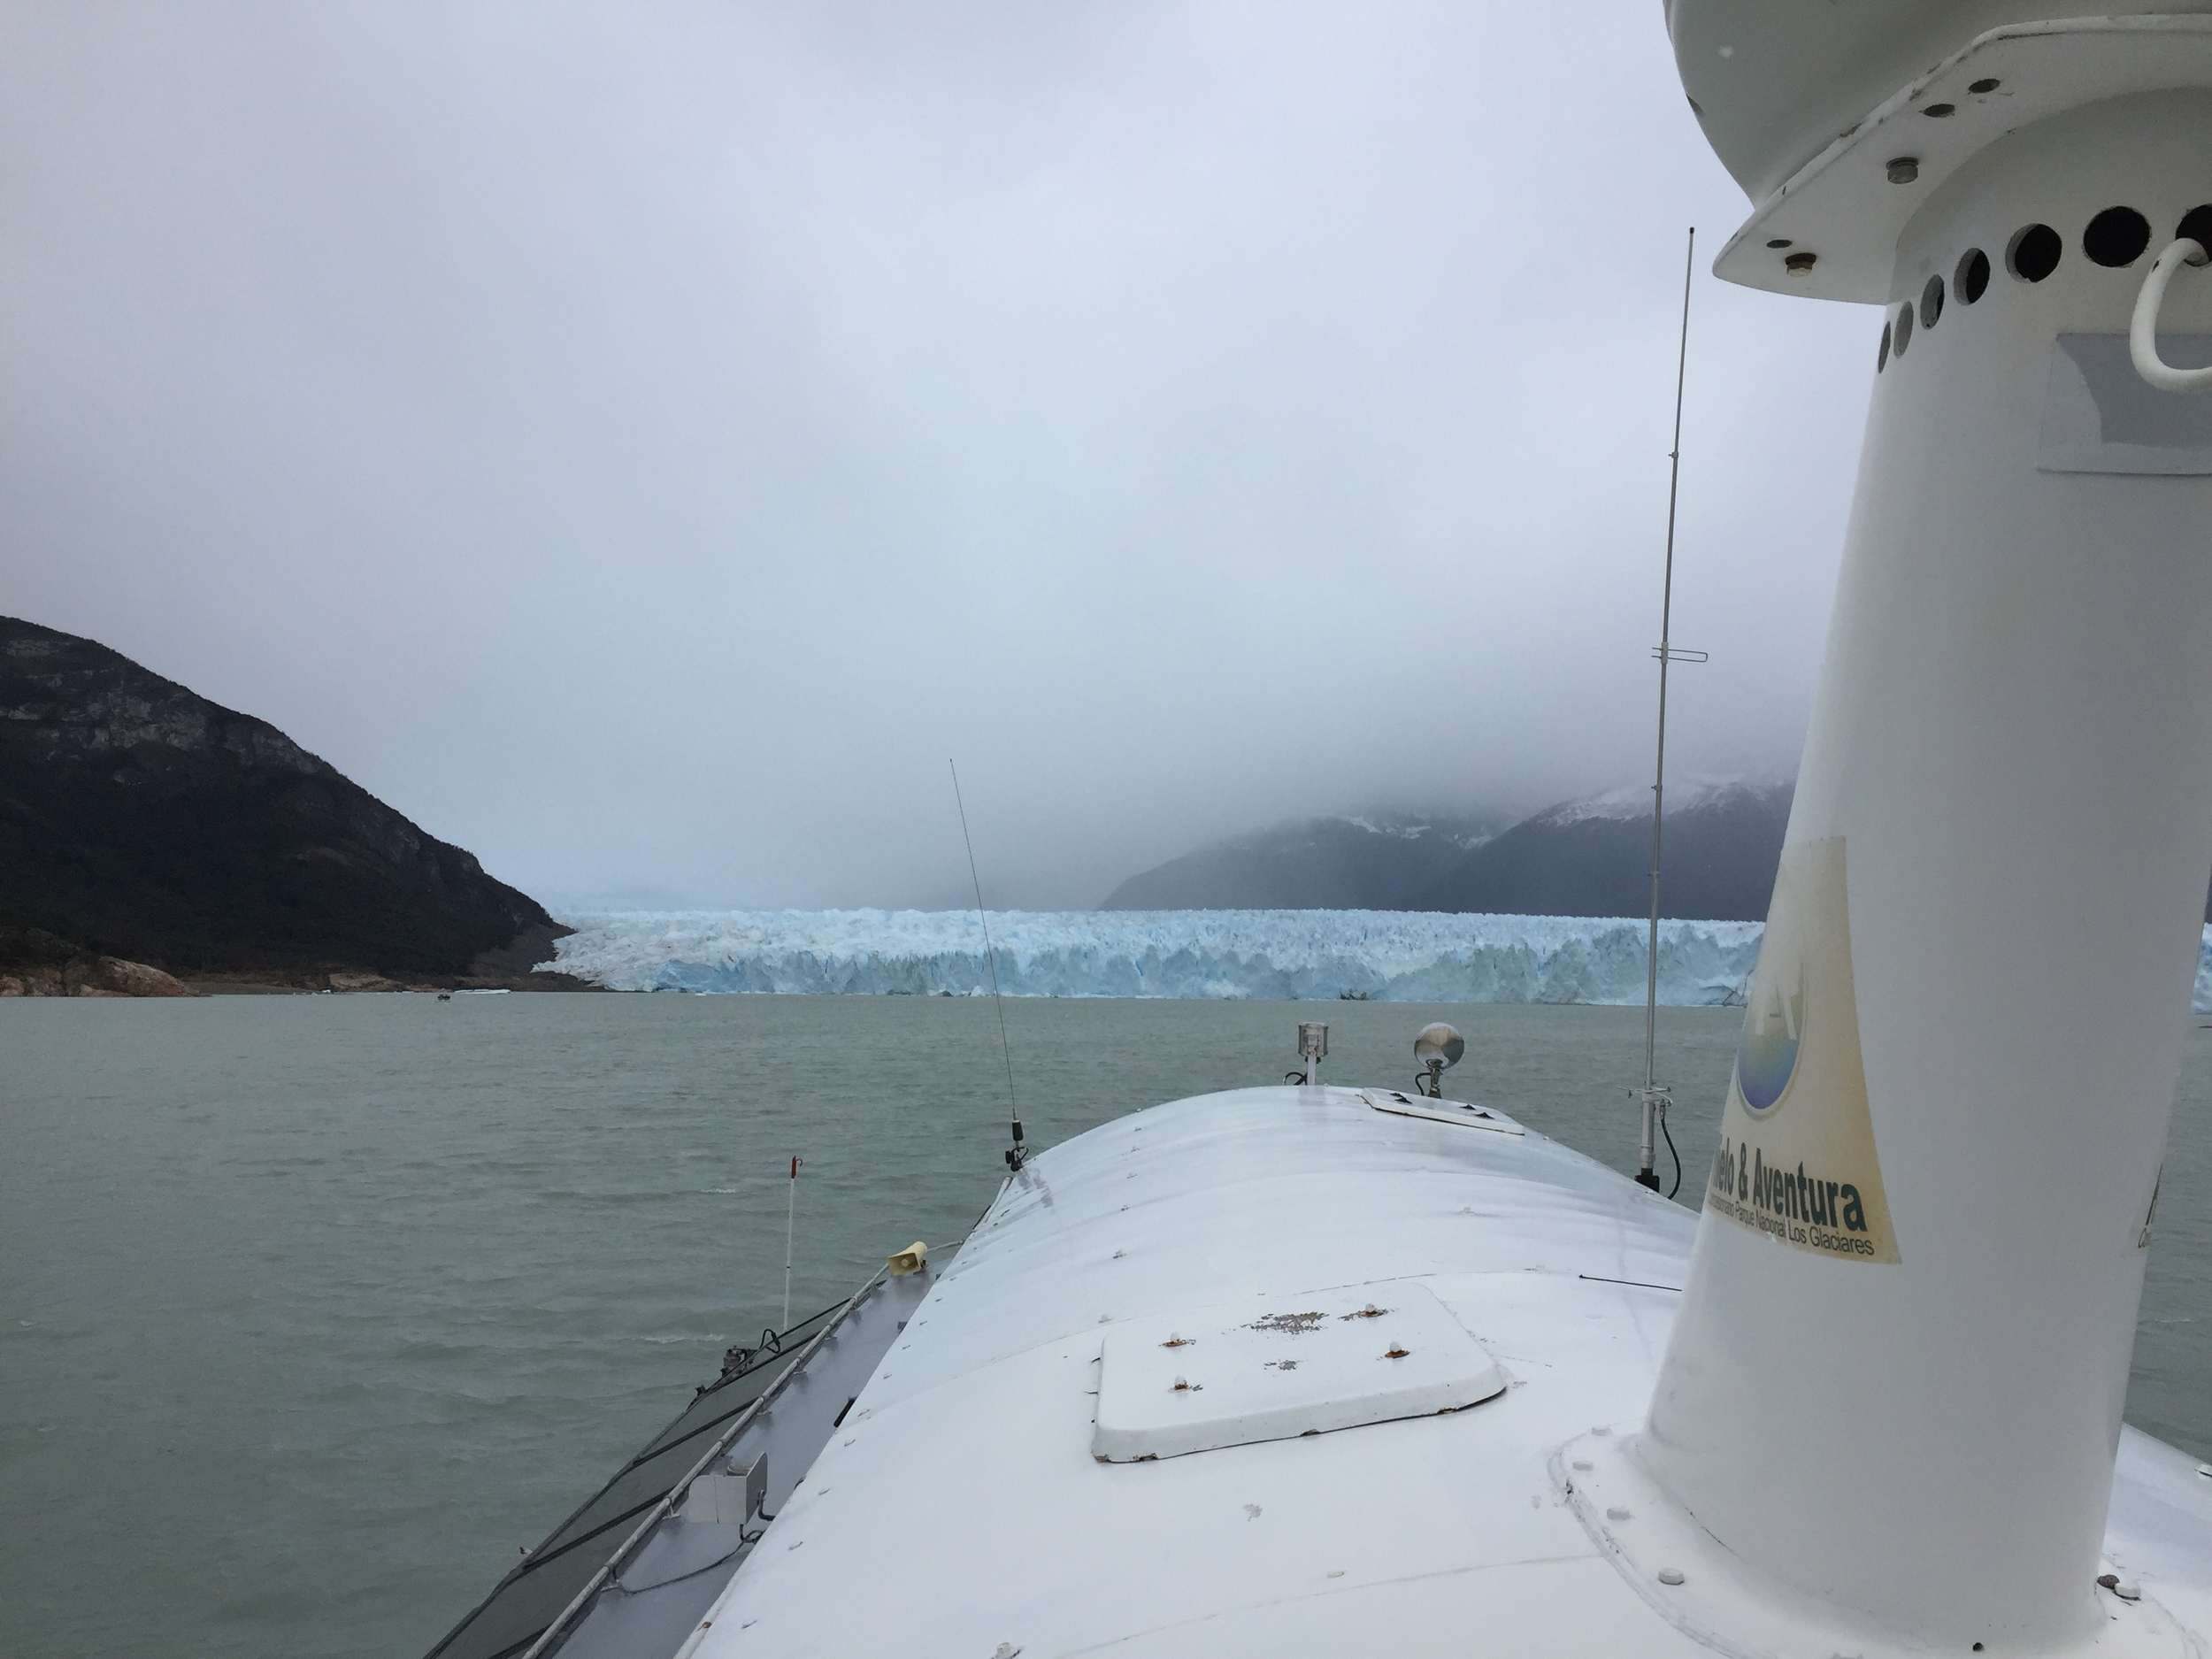 Taking a boat to get closer to the glacier...